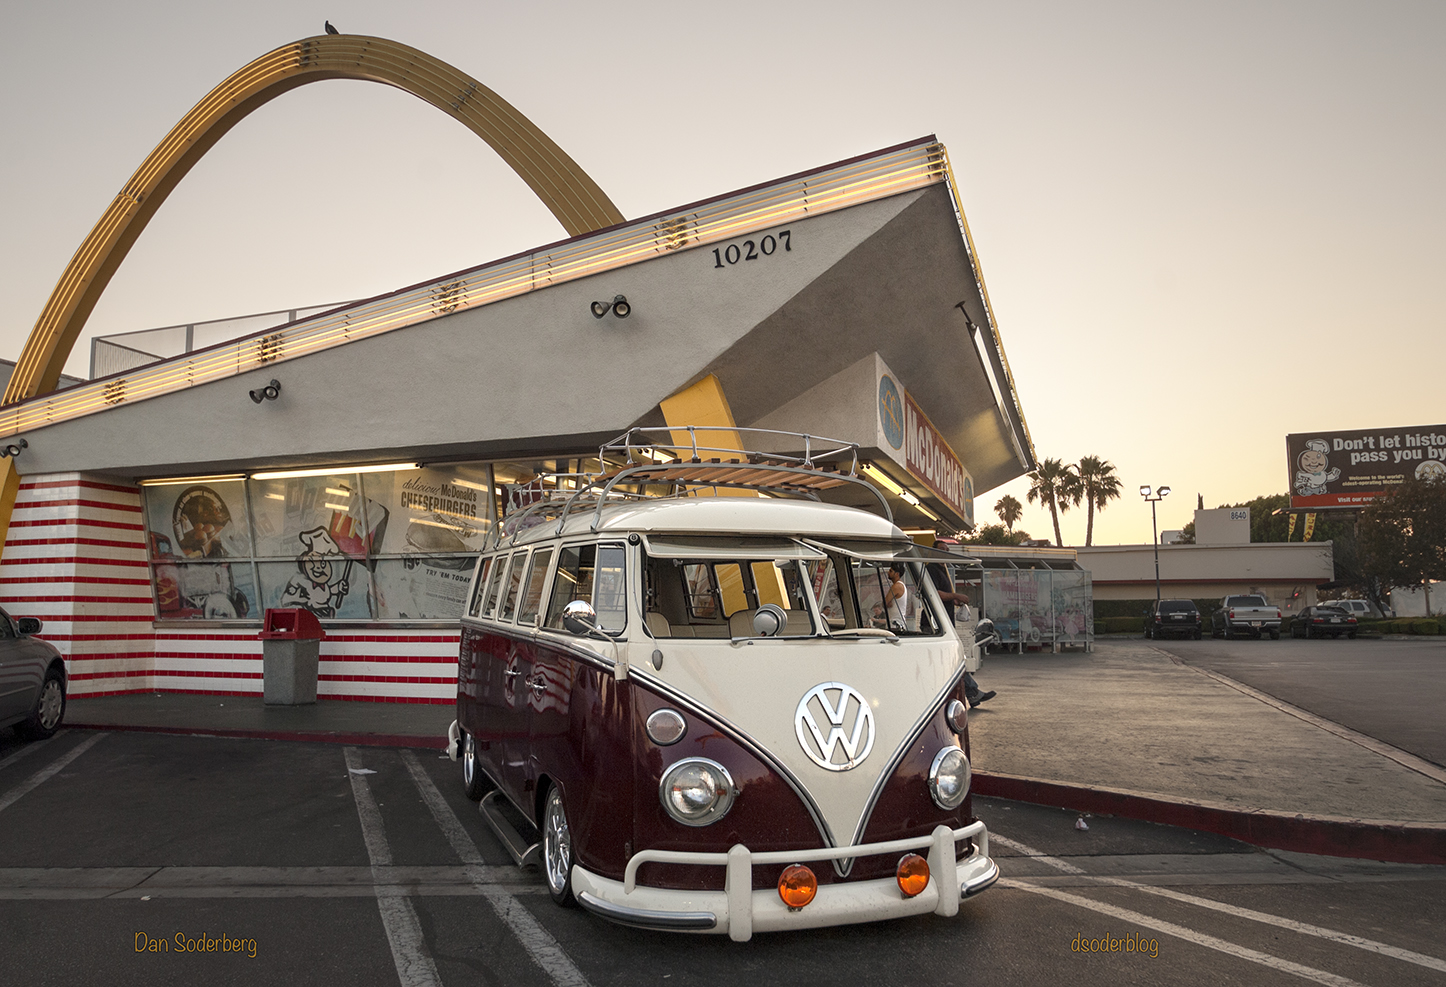 mcdonalds-downey-vw-buss_alt_dsc0249